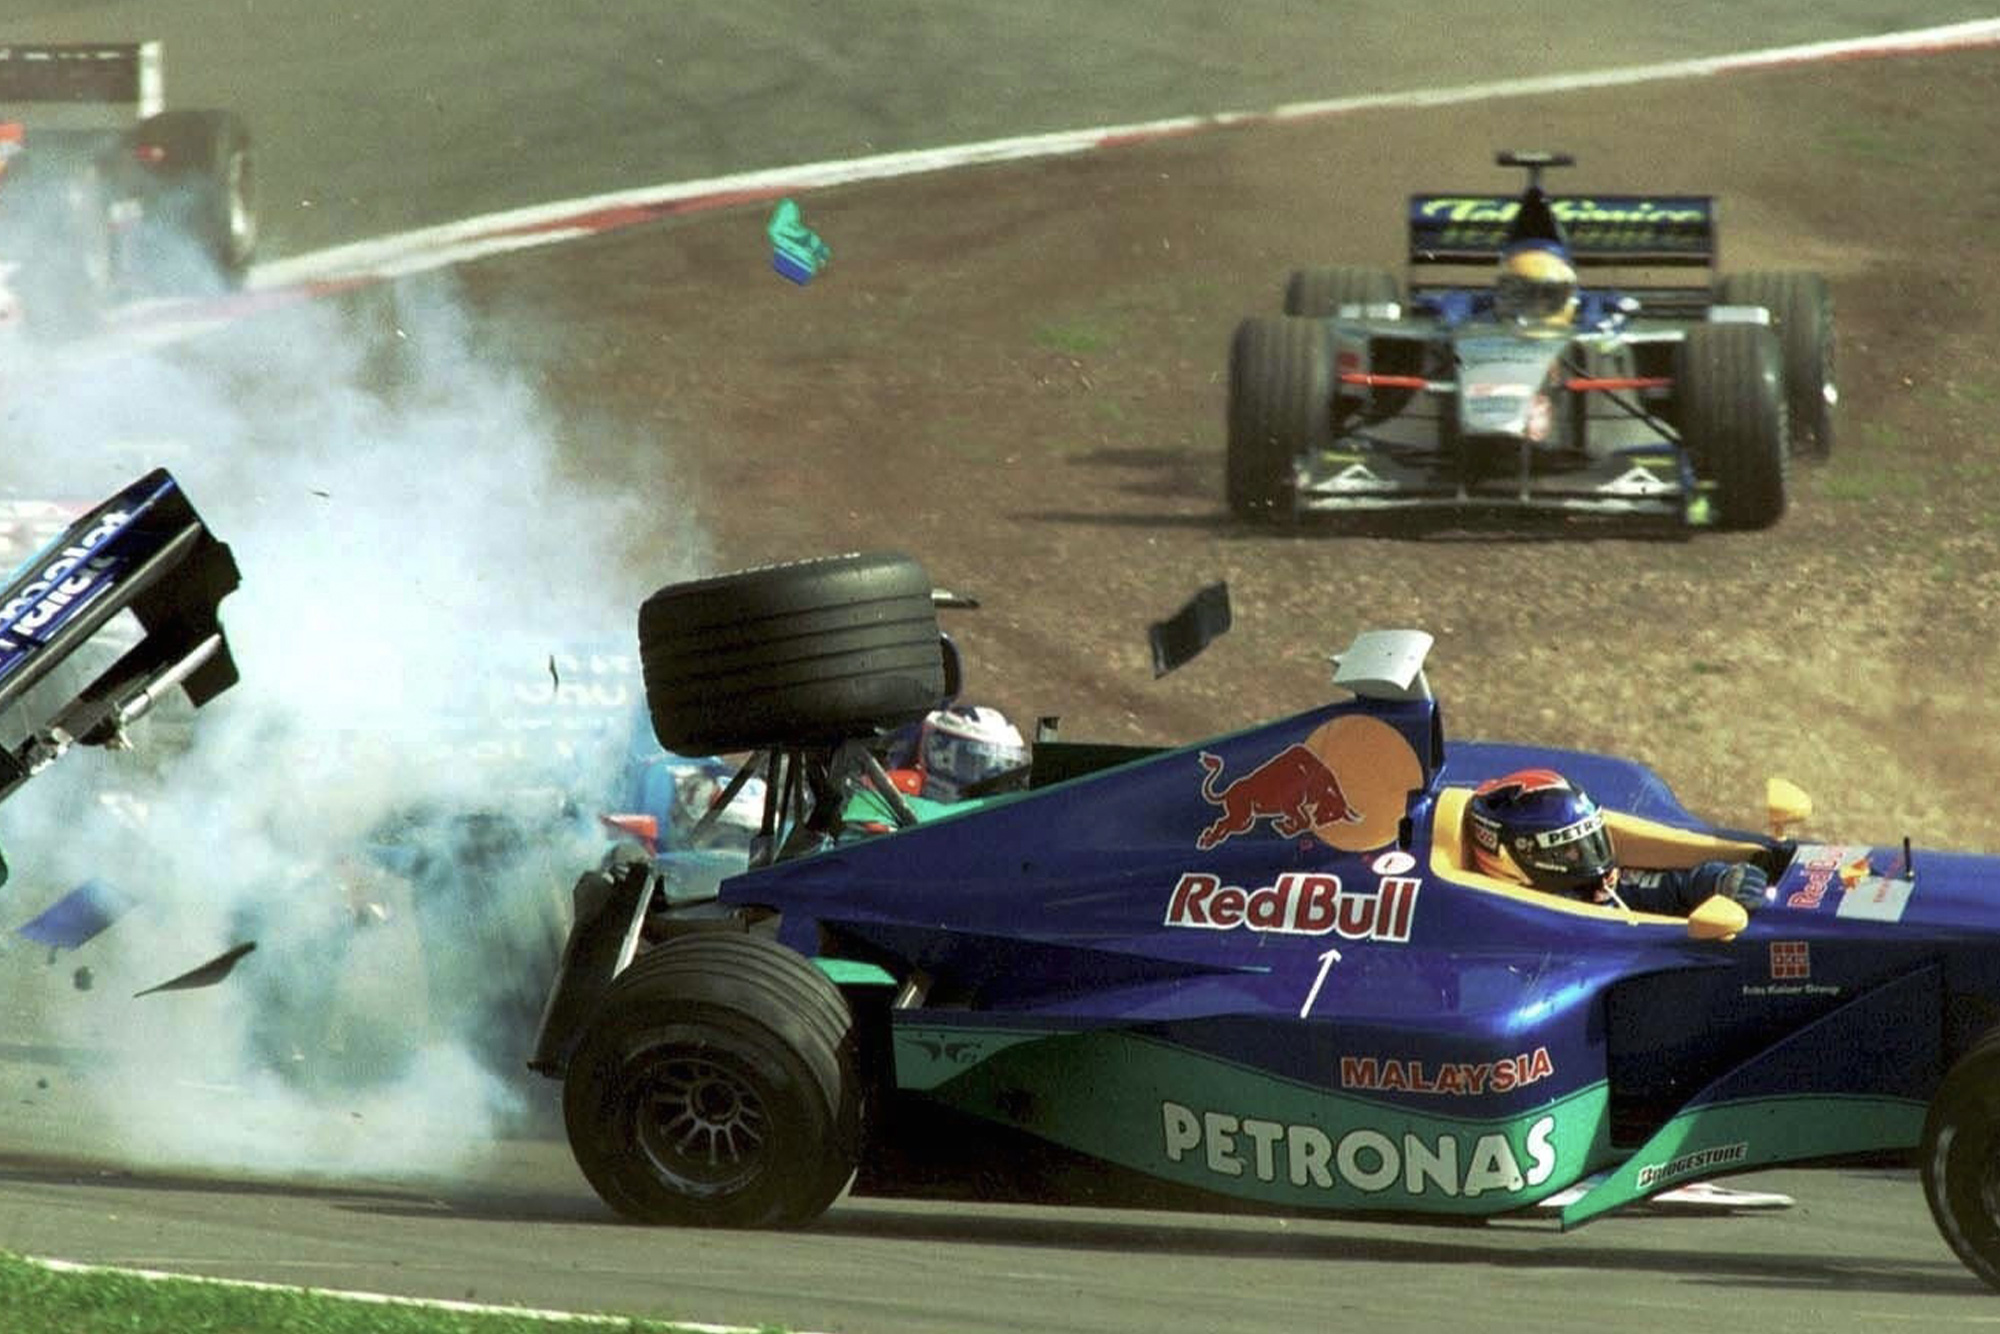 Pedro Diniz is flipped by Alexander Wurz at the start of th 1999 F1 European Grand Prix at the Nurburgring